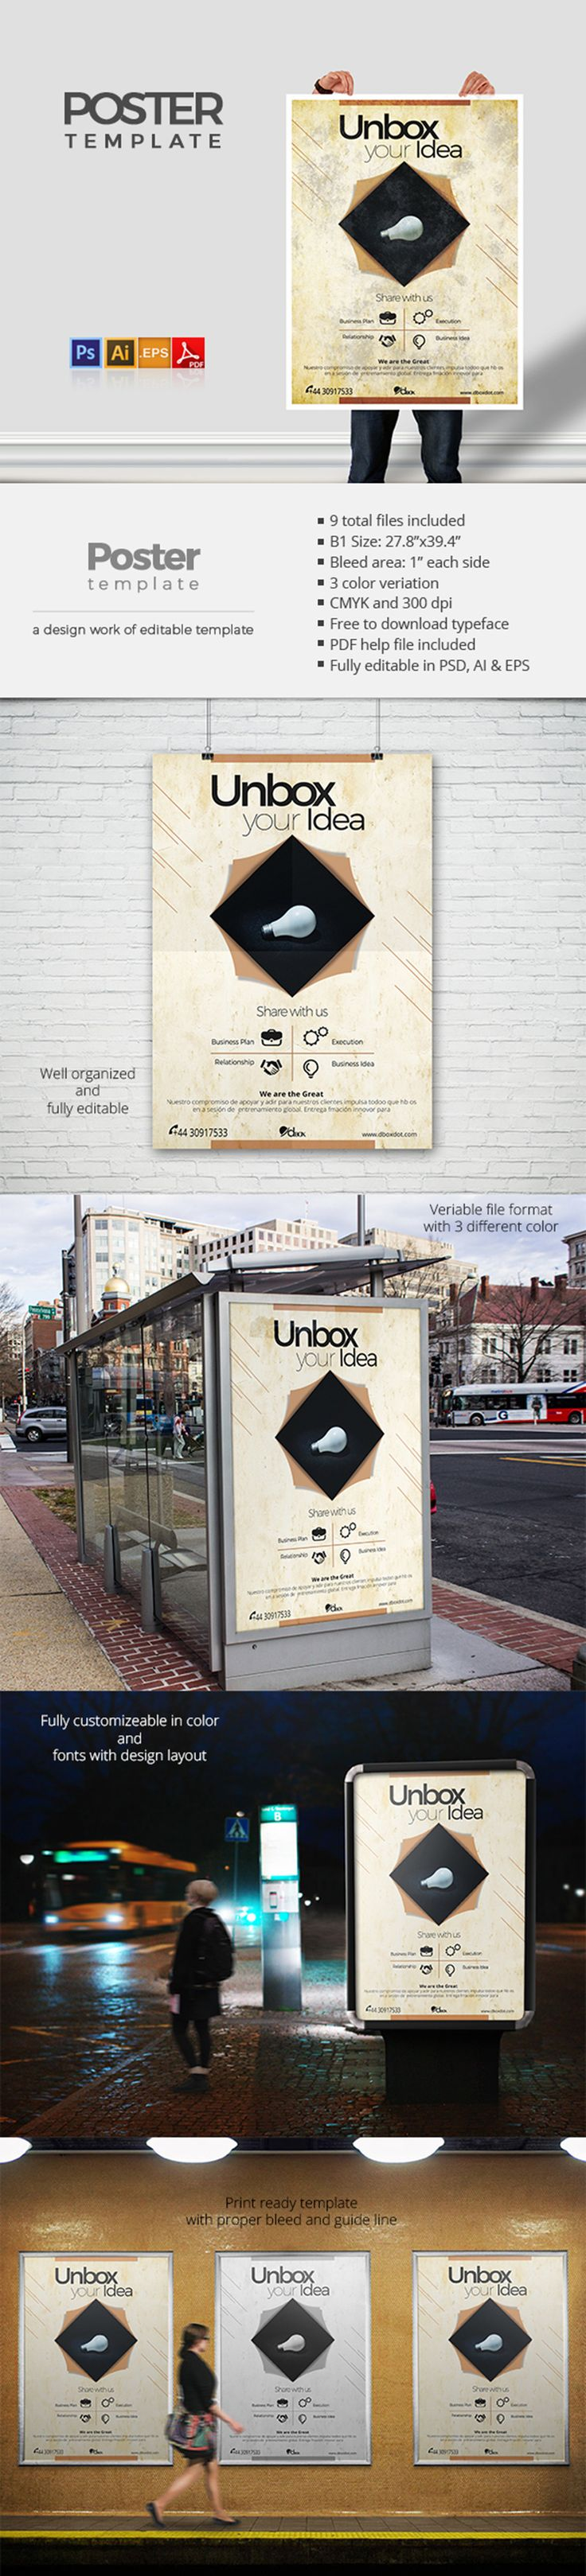 A high quality design work for professionals. This Poster Template has been developed to boost your Ultimate Marketing Opportunity and brand awareness for large and small organization, with well studied and effective marketing content.